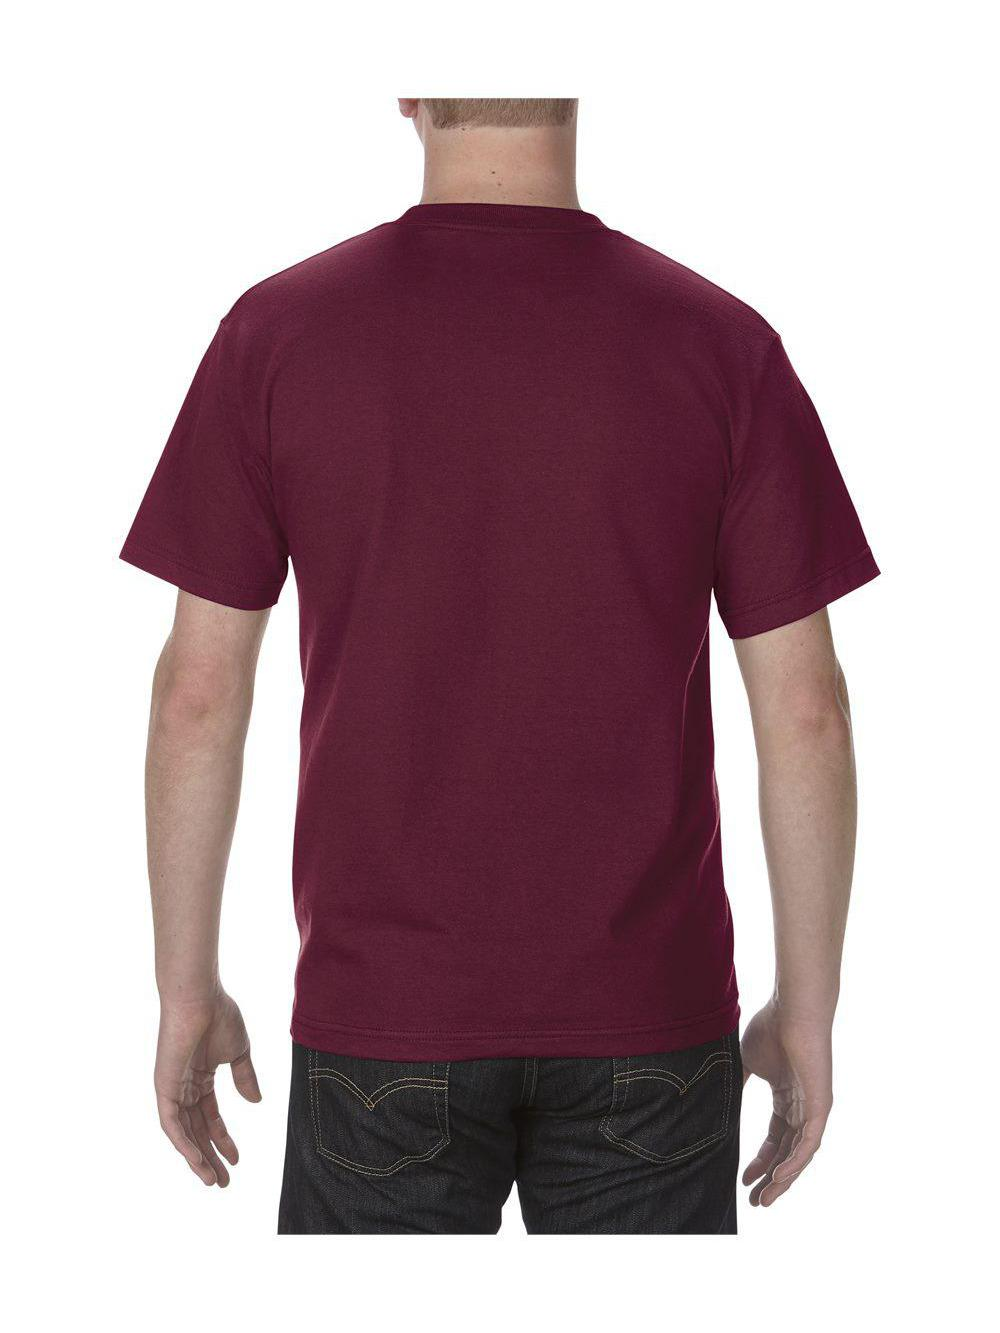 ALSTYLE-Classic-T-Shirt-1301 thumbnail 16